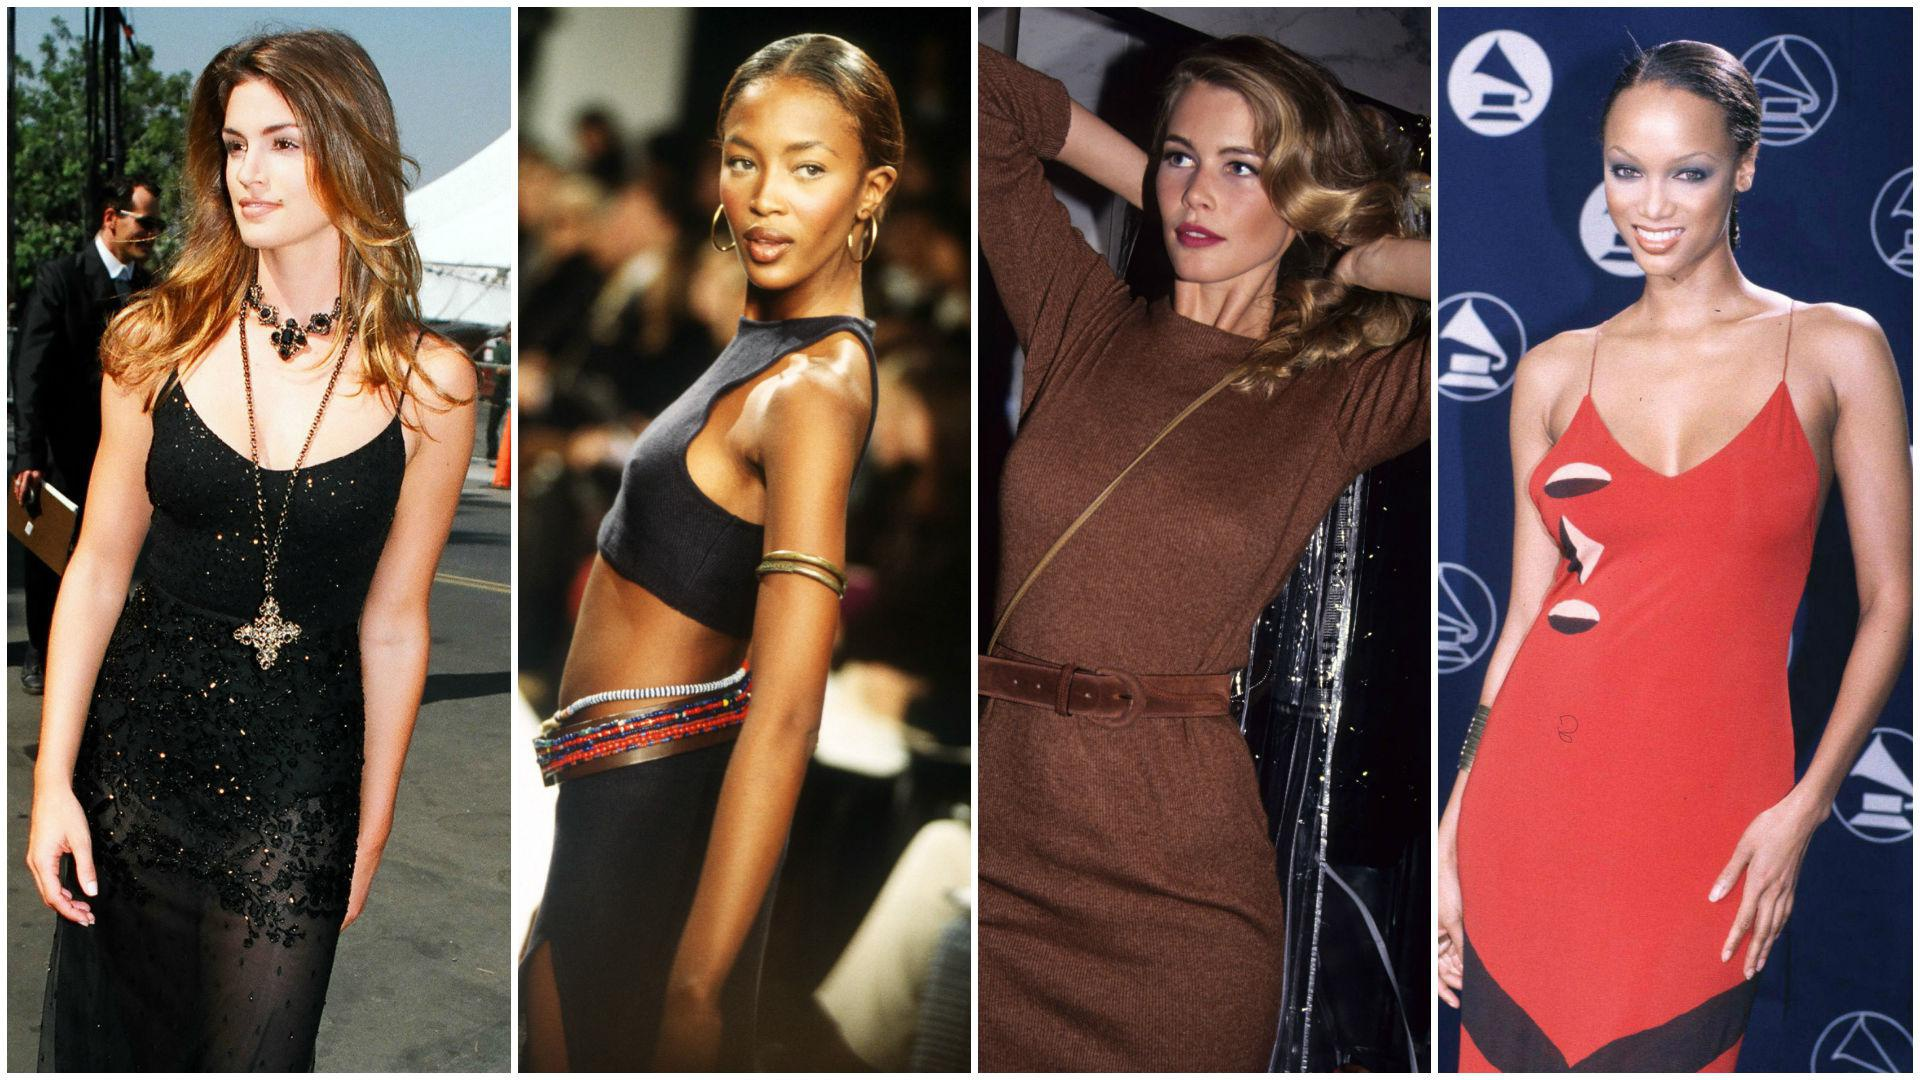 Dear '90s, we want our curvy models back!